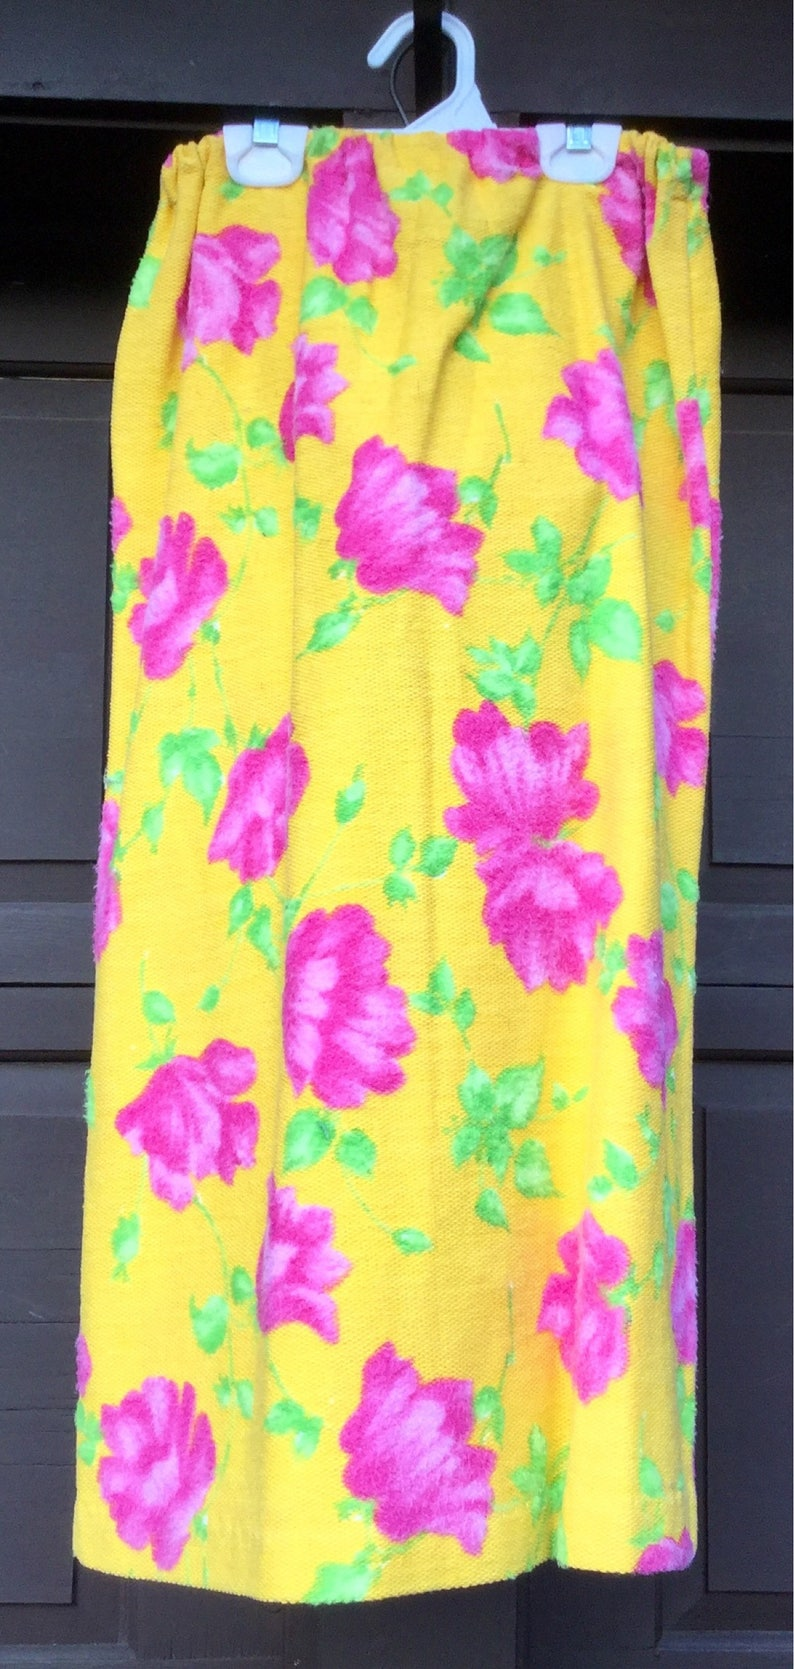 1980s Floral Print Skirt Yellow Pencil Neon Pink Rose Flower Long Midi Saks Fifth Avenue\u201d England EasterWinter Woman/'s Size Small Vintage